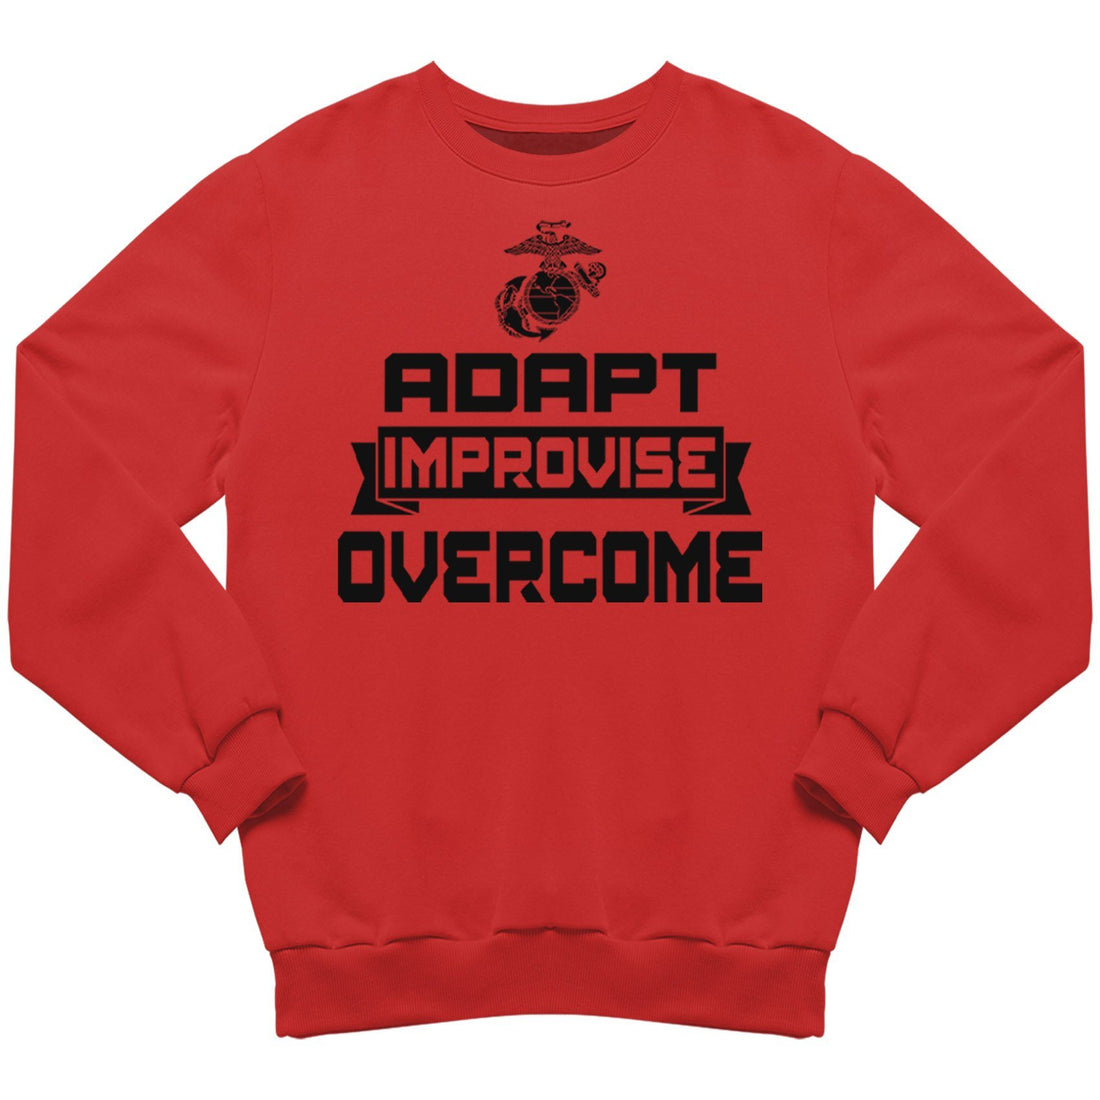 Adapt, Improvise, Overcome Sweatshirt - Marine Corps Direct